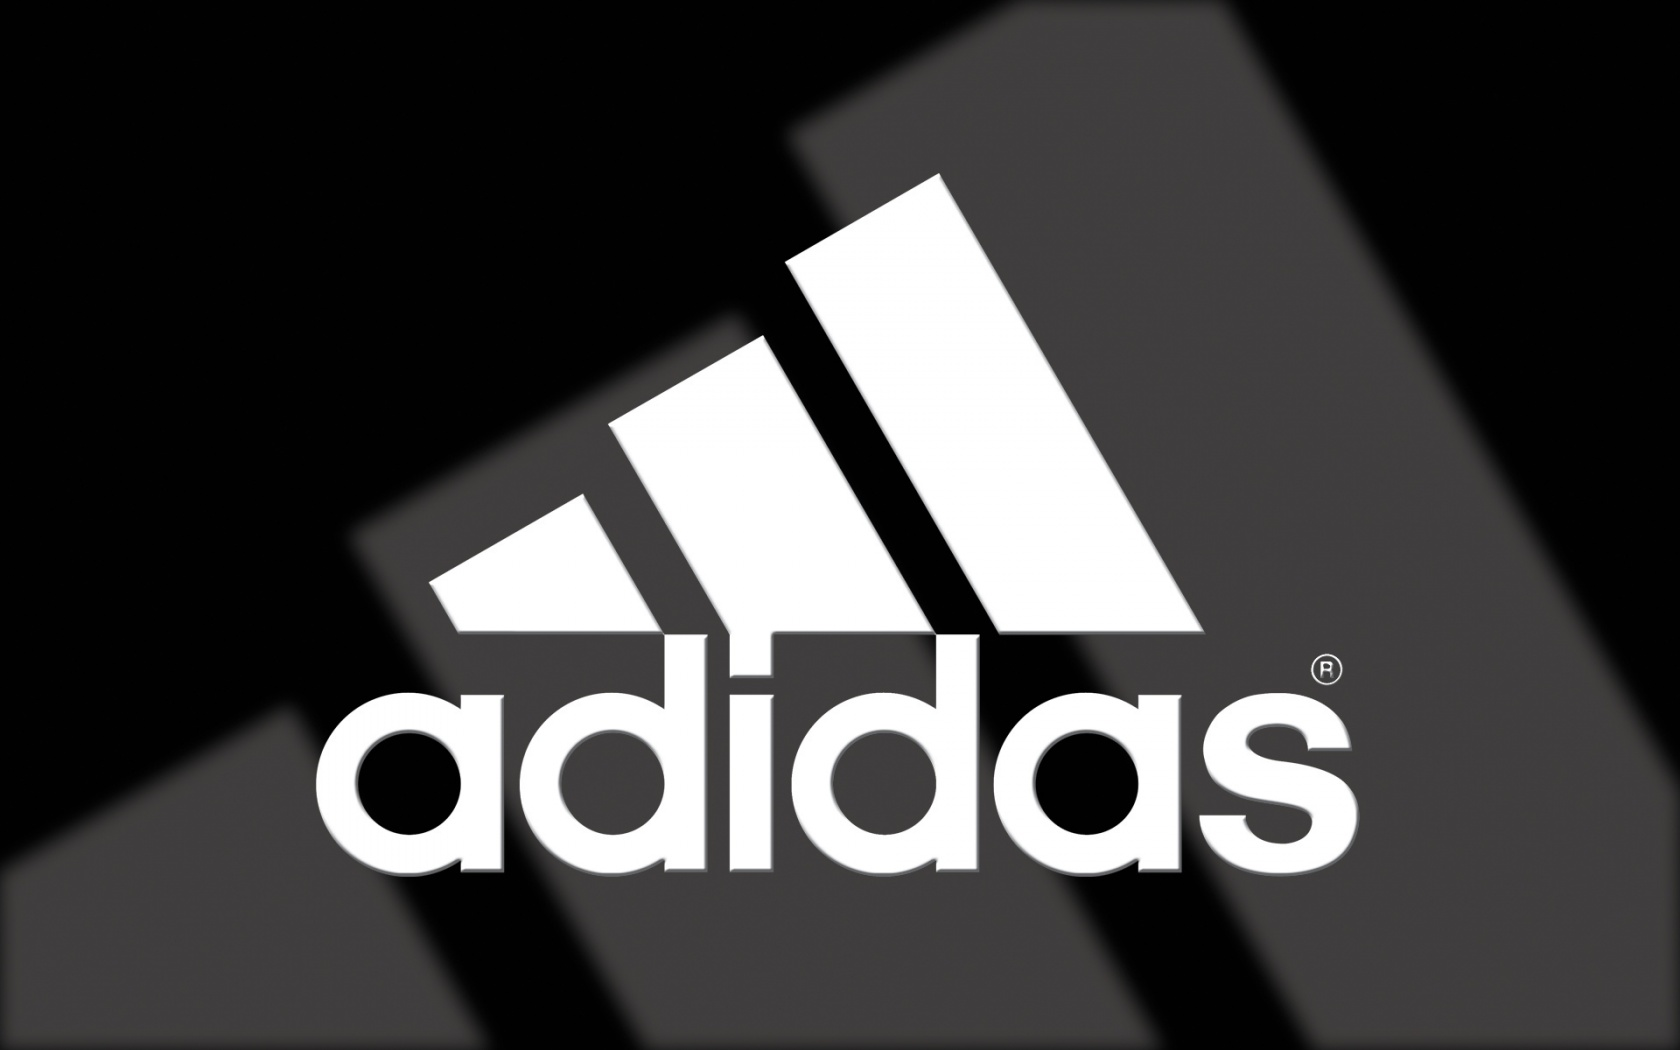 1680x1050 Adidas desktop PC and Mac wallpaper 1680x1050